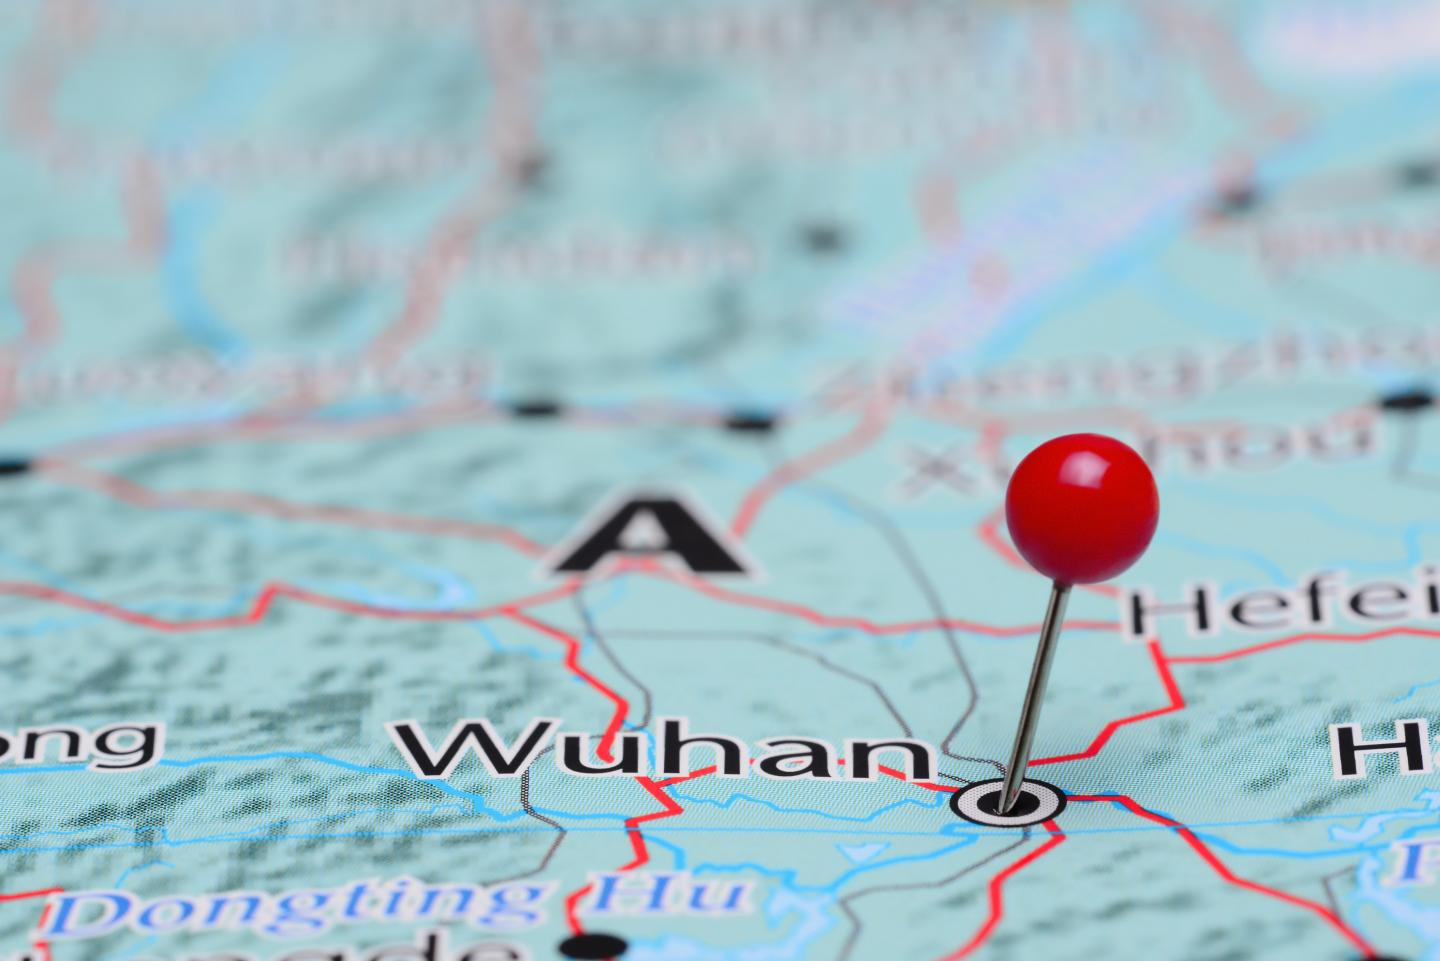 Patient Characteristics of Fatal COVID Cases in Wuhan